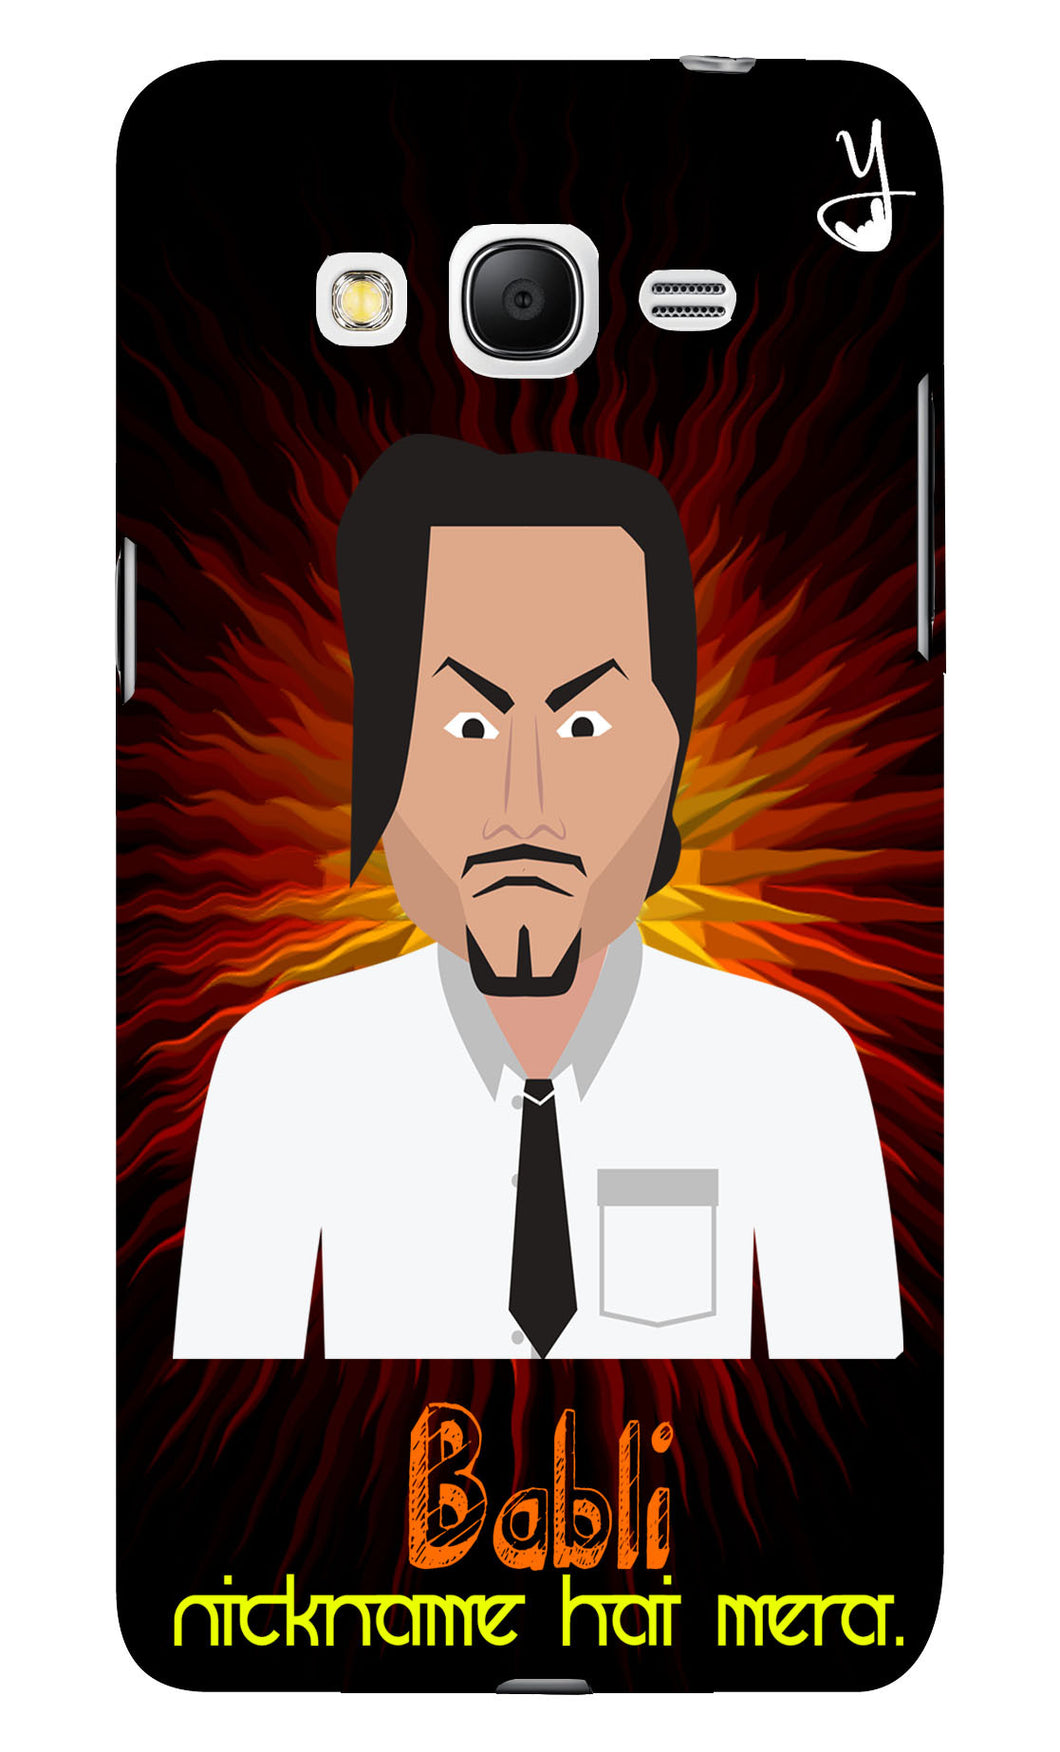 Angry Master Ji Edition for Samsung Galaxy Grand Prime